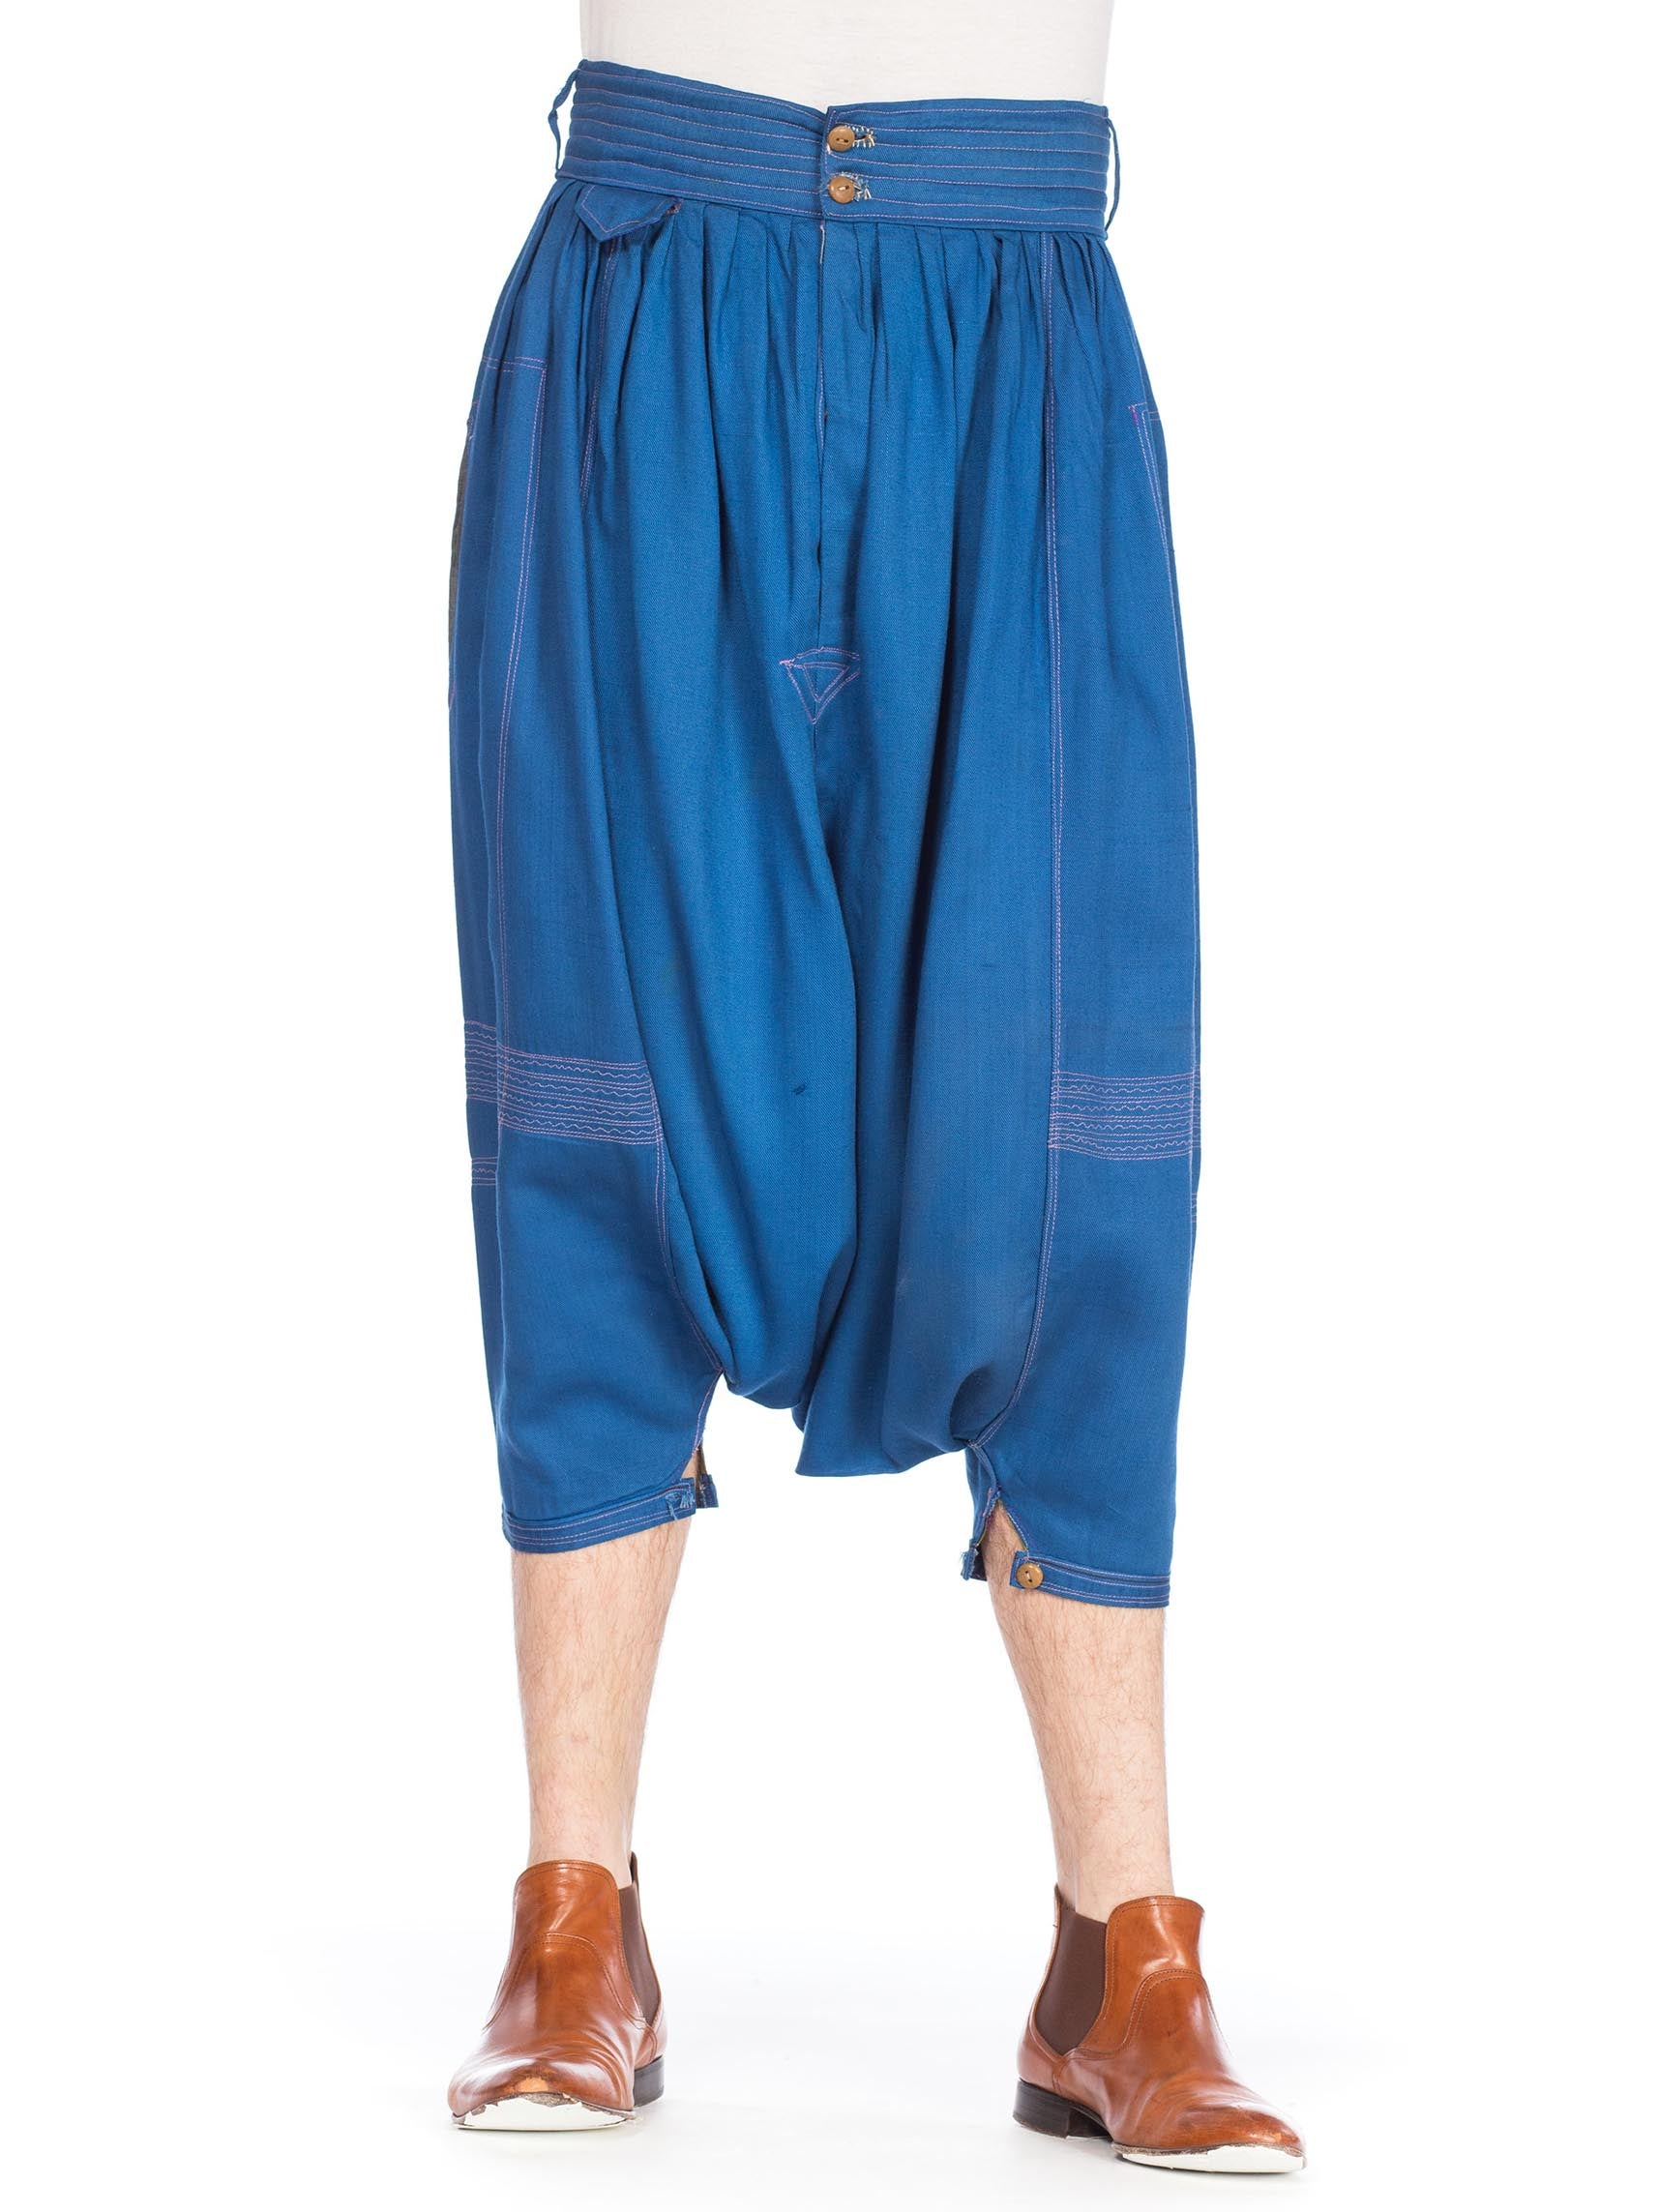 1920s Blue Cotton Harem Pants